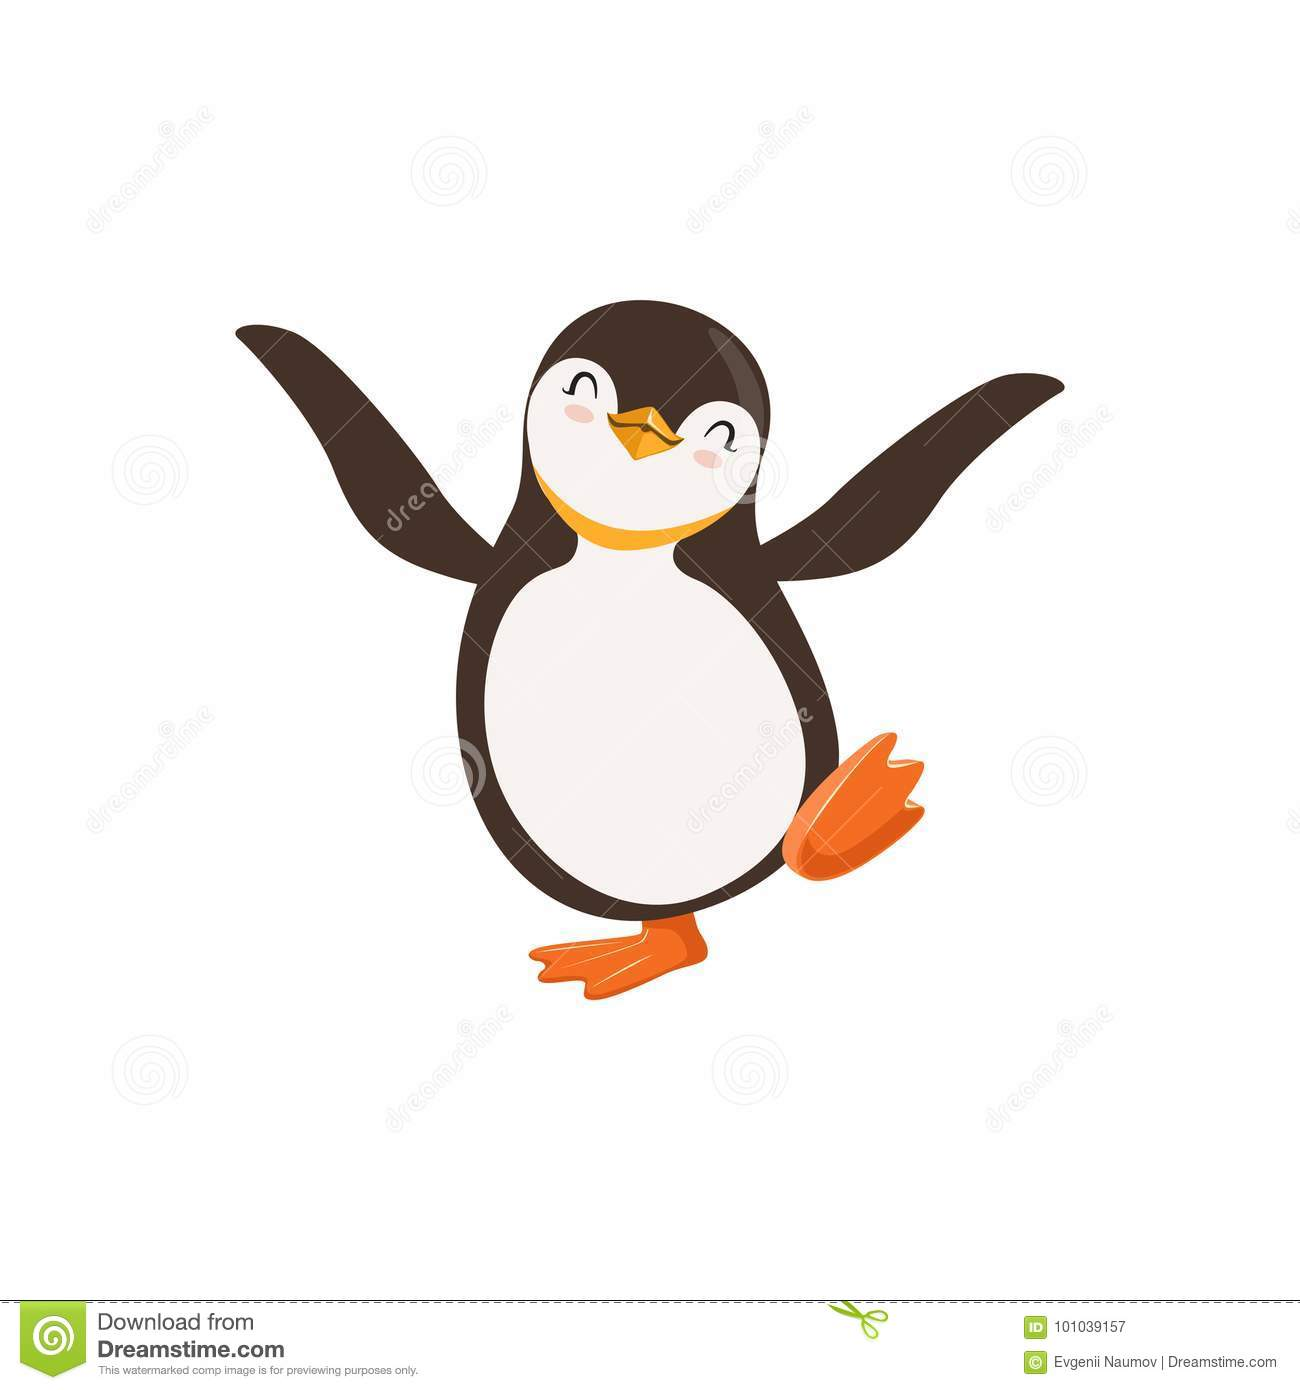 Cute vector Happy Penguin Toon Character Dancing With Its Eyes Closed On A White background